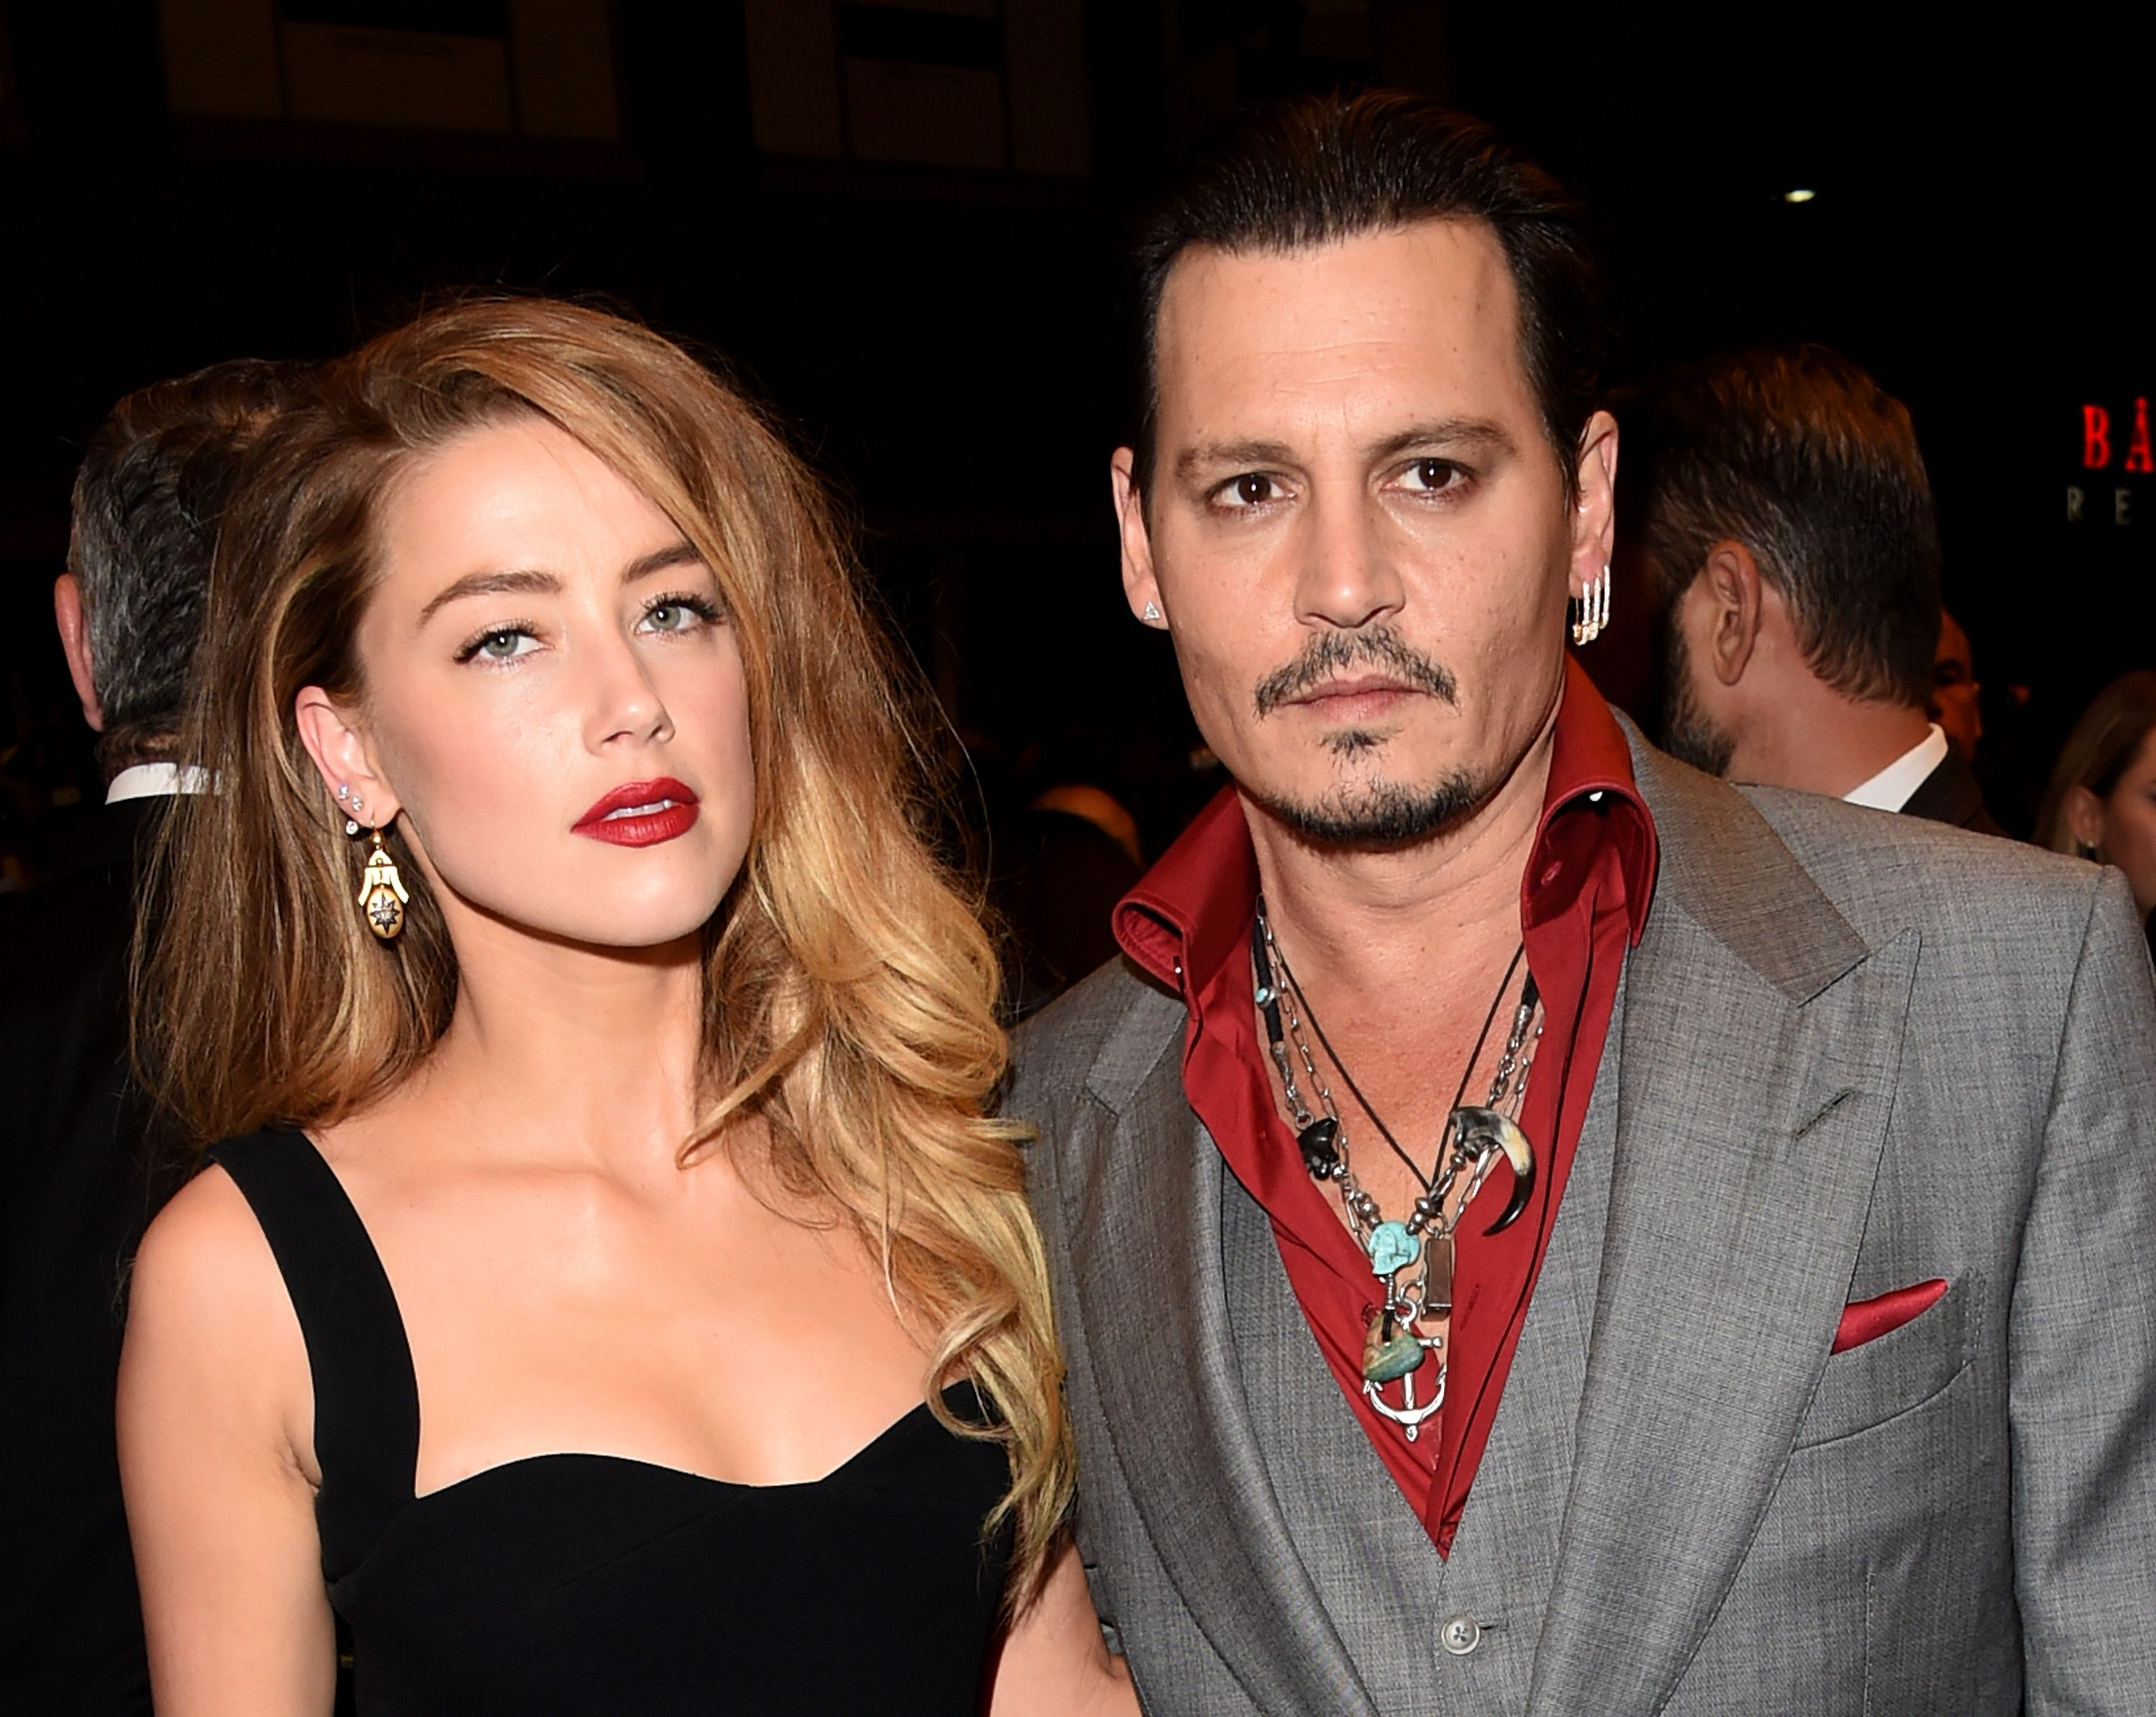 Former couple Amber Heard and Johnny Depp